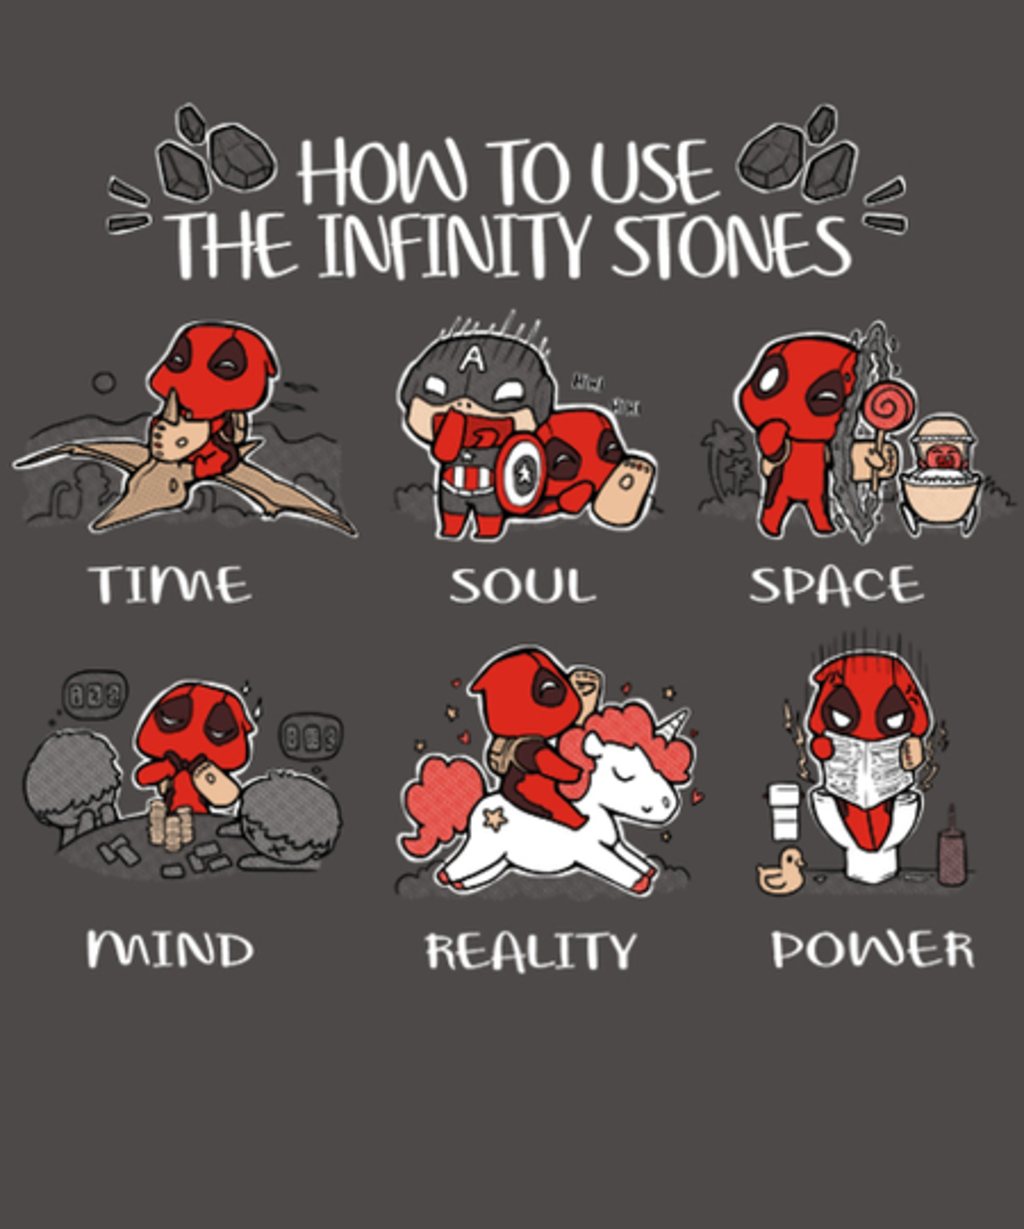 Qwertee: How to use stones